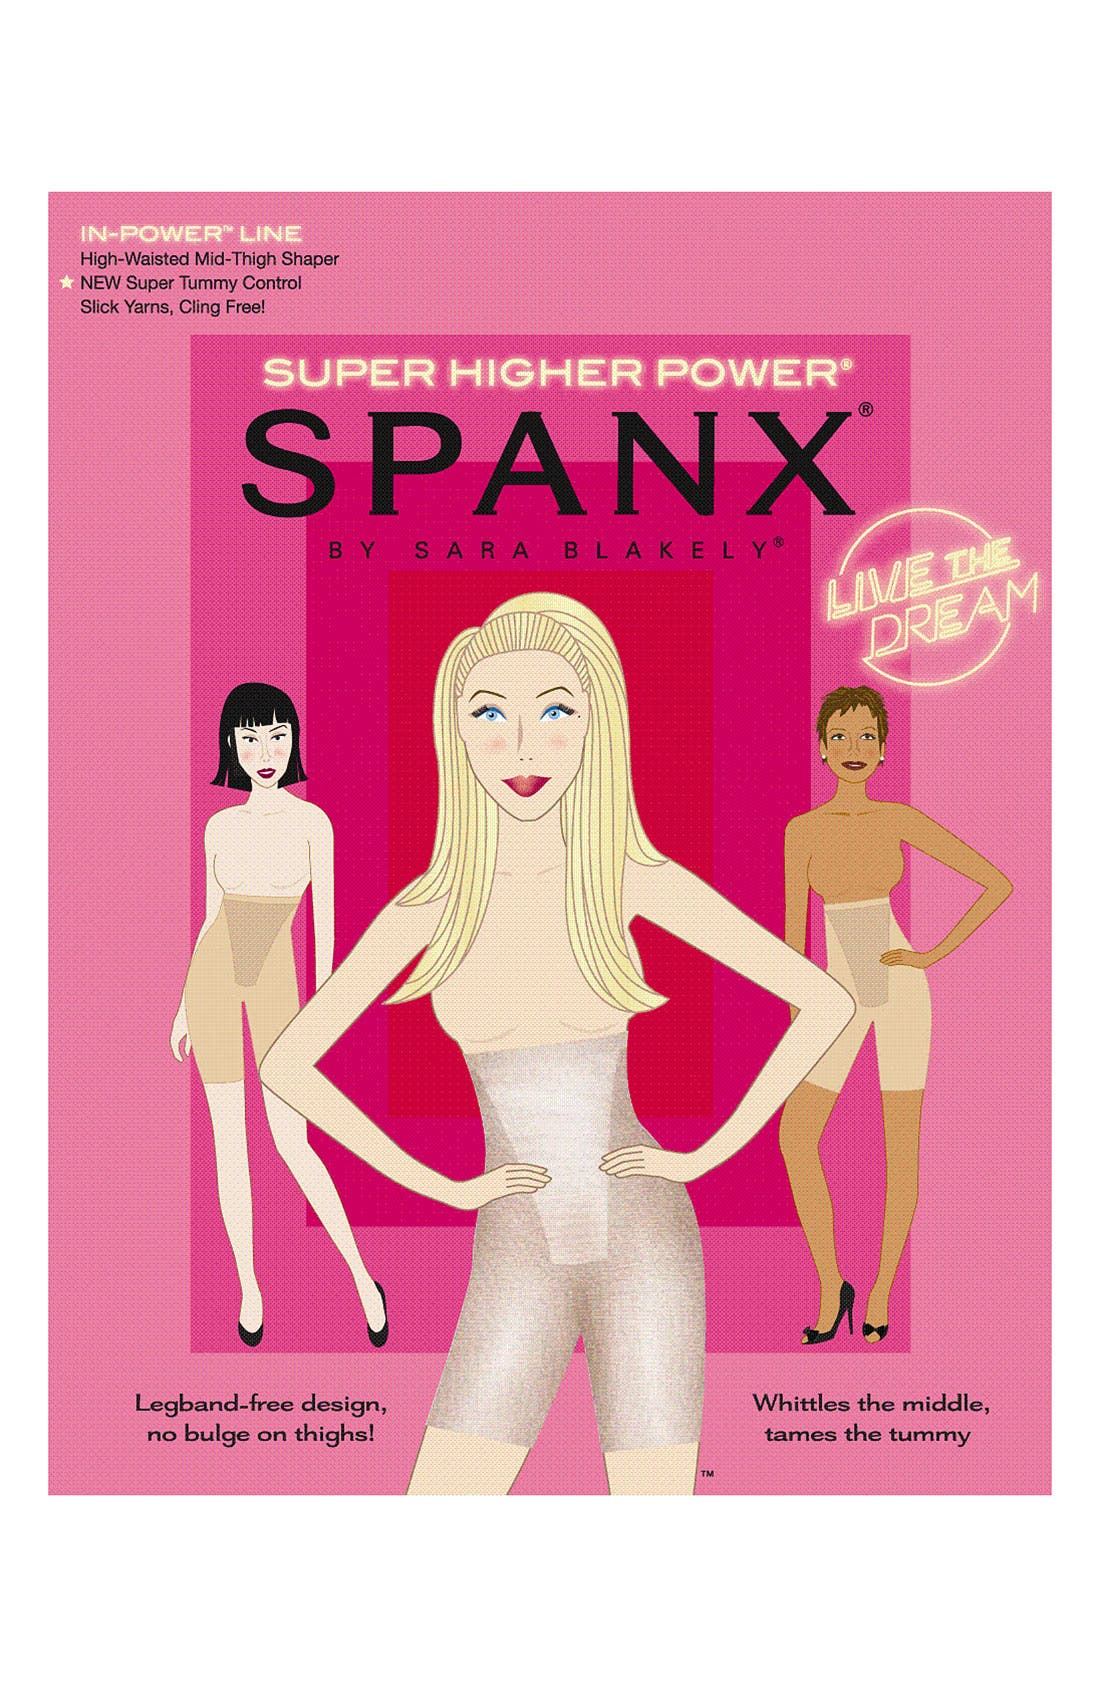 Alternate Image 4  - SPANX® 'In-Power Line' Super Higher Power Tummy Control Shaper (Regular & Plus Size) (Online Only)